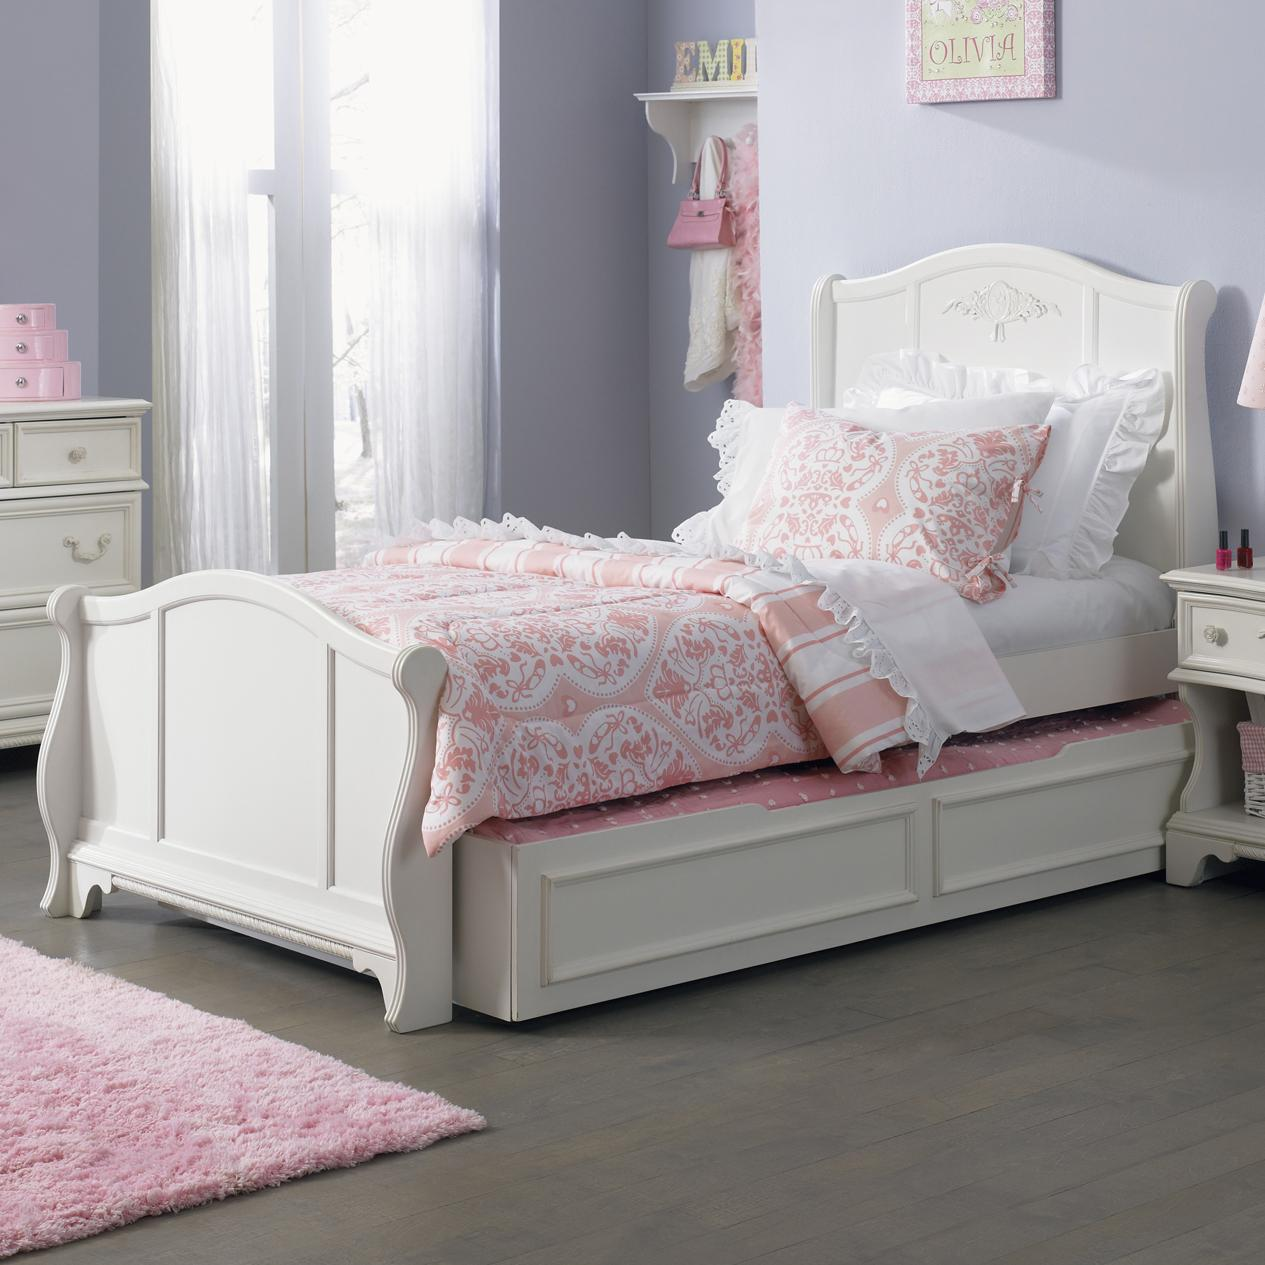 Liberty Furniture Arielle Youth Bedroom Full Sleigh Bed - Item Number: 352-YBR-SET59